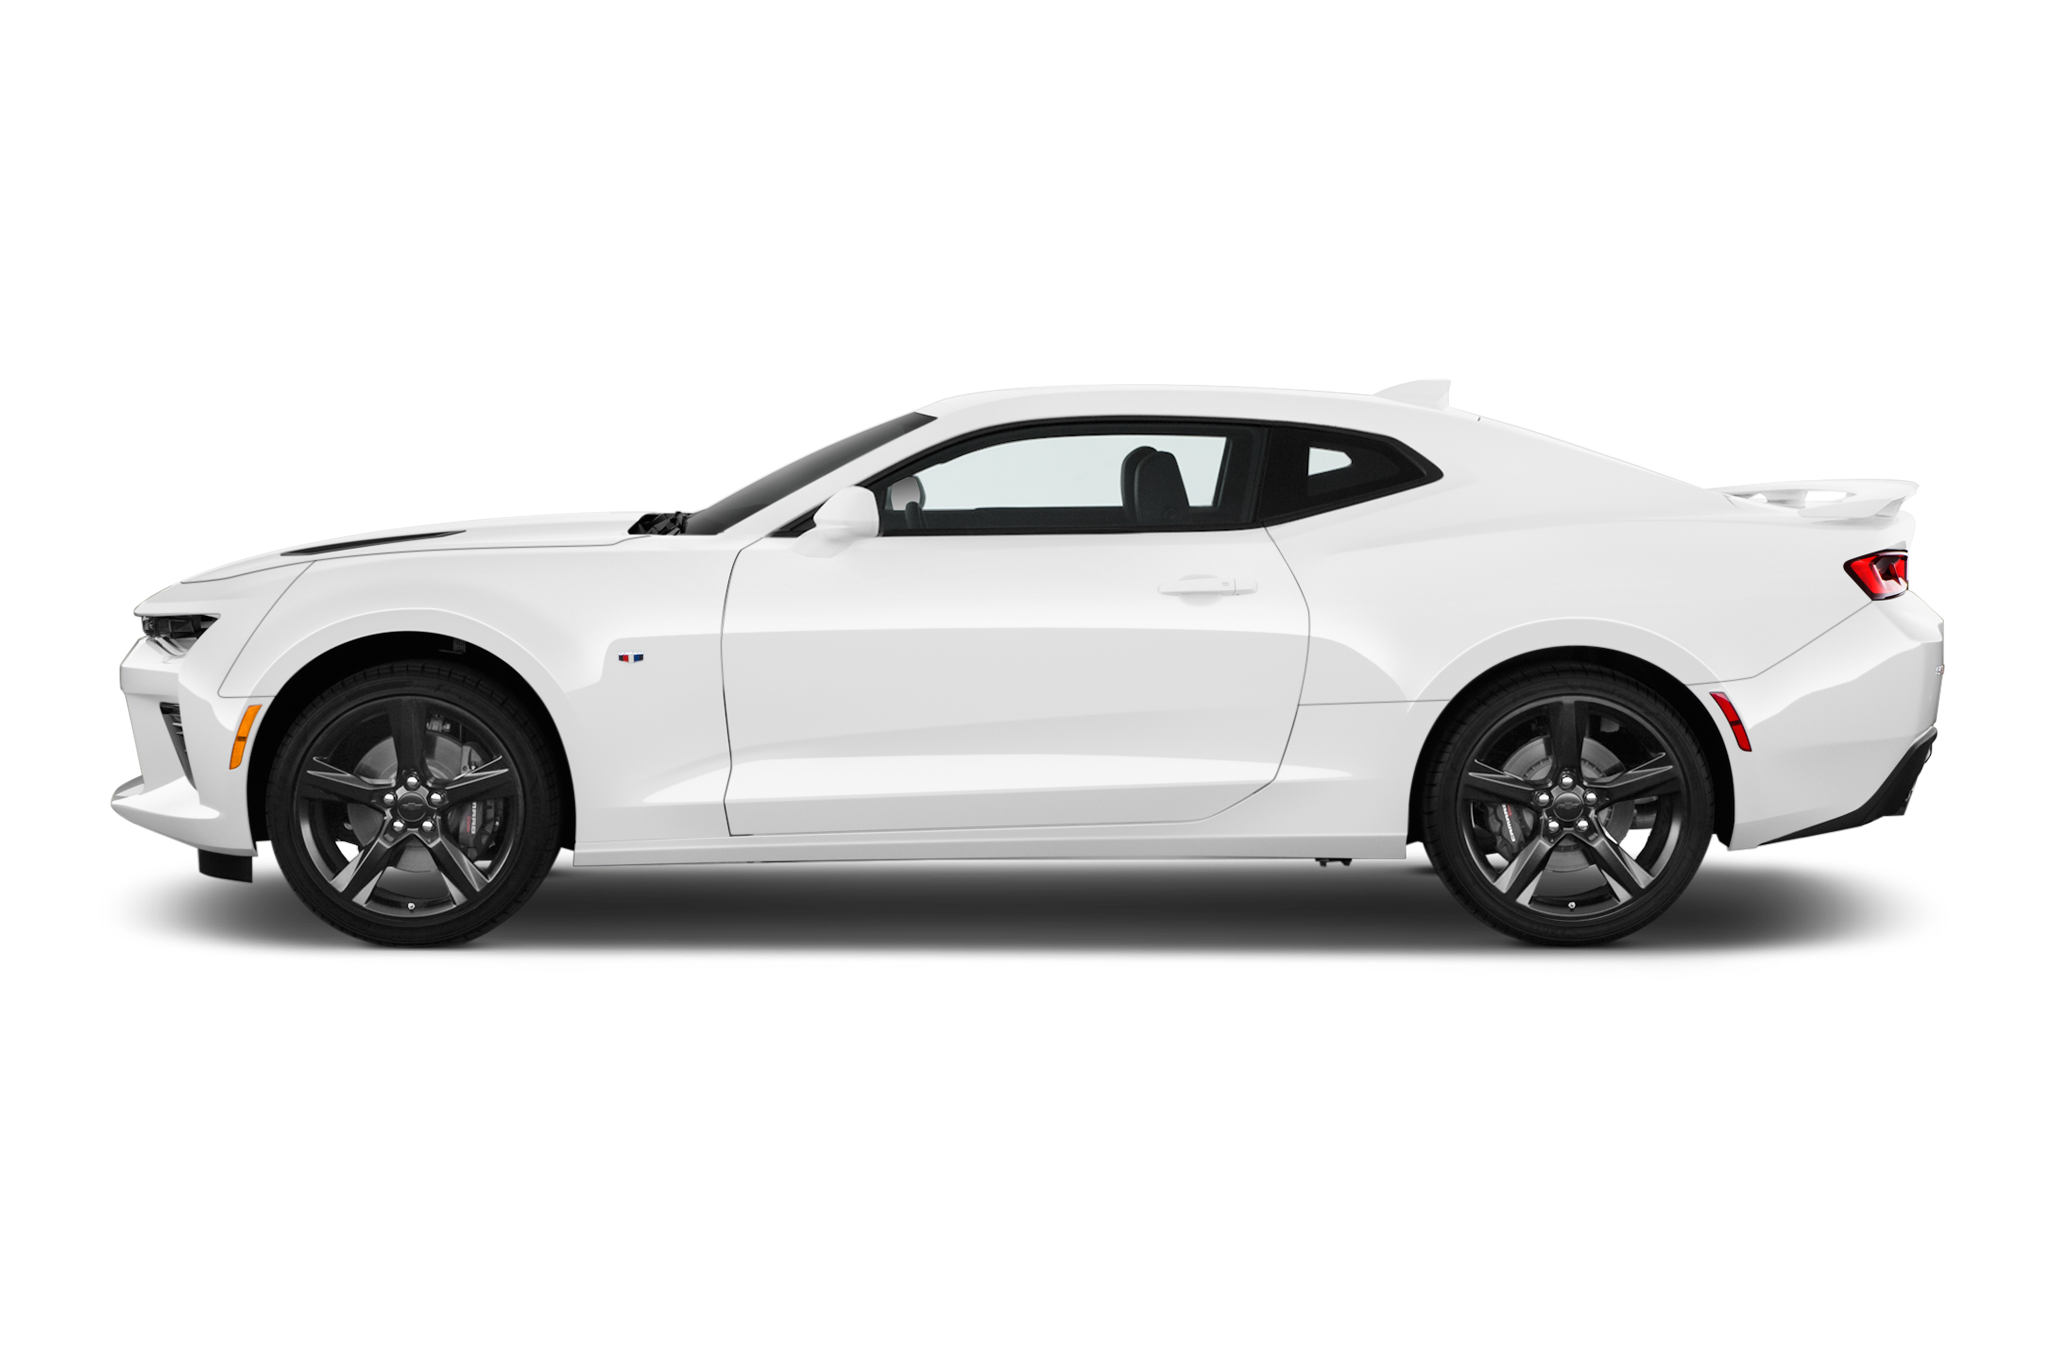 Drag race car clipart jpg black and white stock SEMA 2016: 2017 Chevrolet COPO Camaro | Automobile Magazine jpg black and white stock